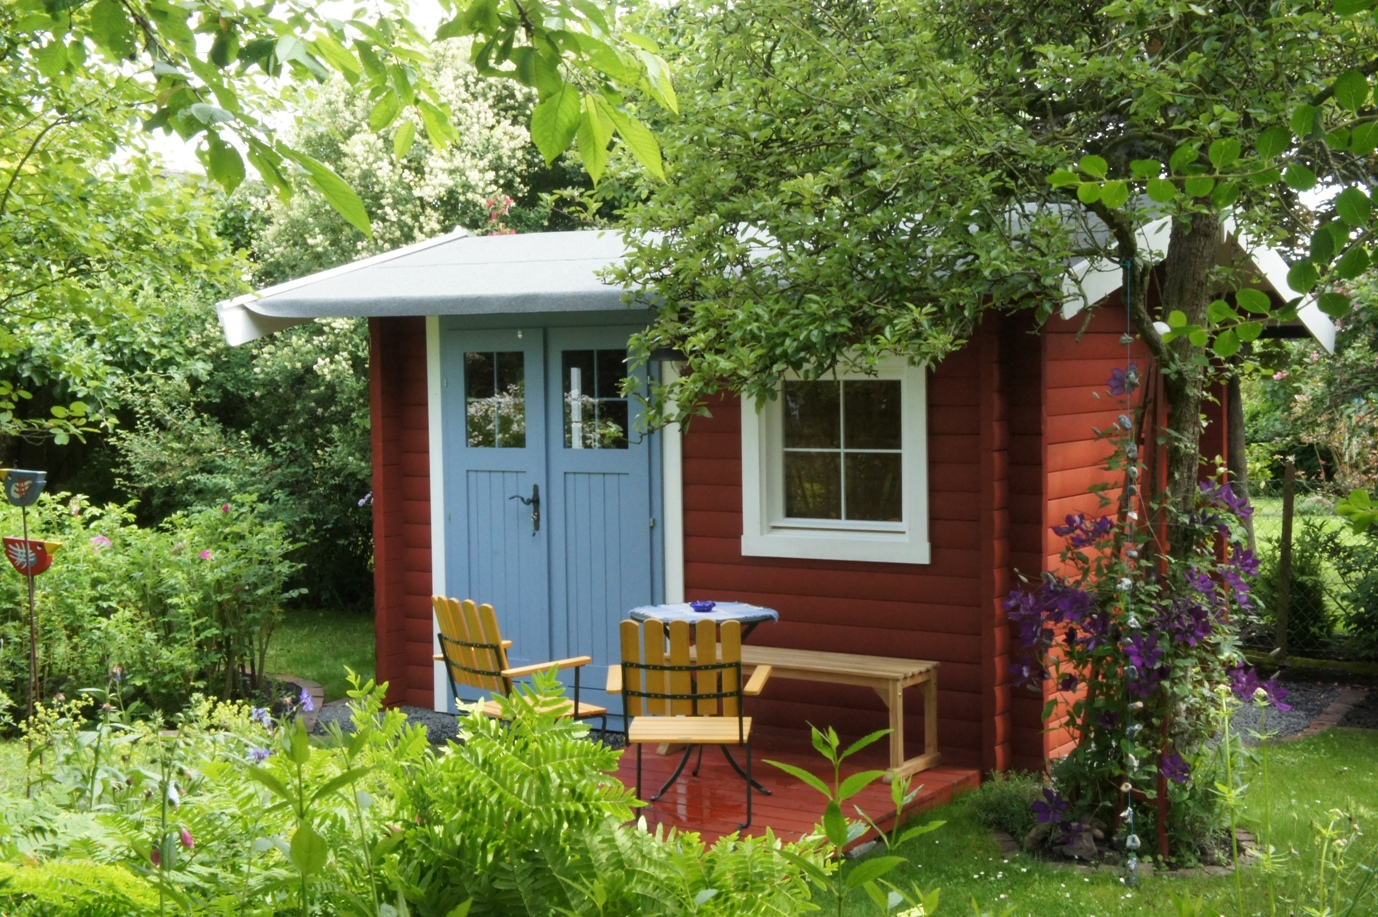 If you are looking for small houses that can fit into a small home lot! This post might help you! We all know that these days, being smart and practical means investing in things that are useful, spectacular, and affordable at the same time.  You can even build these compact houses in your garden if you have that extra and bare space that needs something to give more life. For couples who are starting married life, these compact houses can be ideal if you don't have enough budget to build a house and also wants privacy from their parents home.   There are many things you can do with these compact houses aside from being a house, you can turn these into a guest room, an entertaining room, a home office or a garden shed! Take a look at these 20 small houses for inspiration!